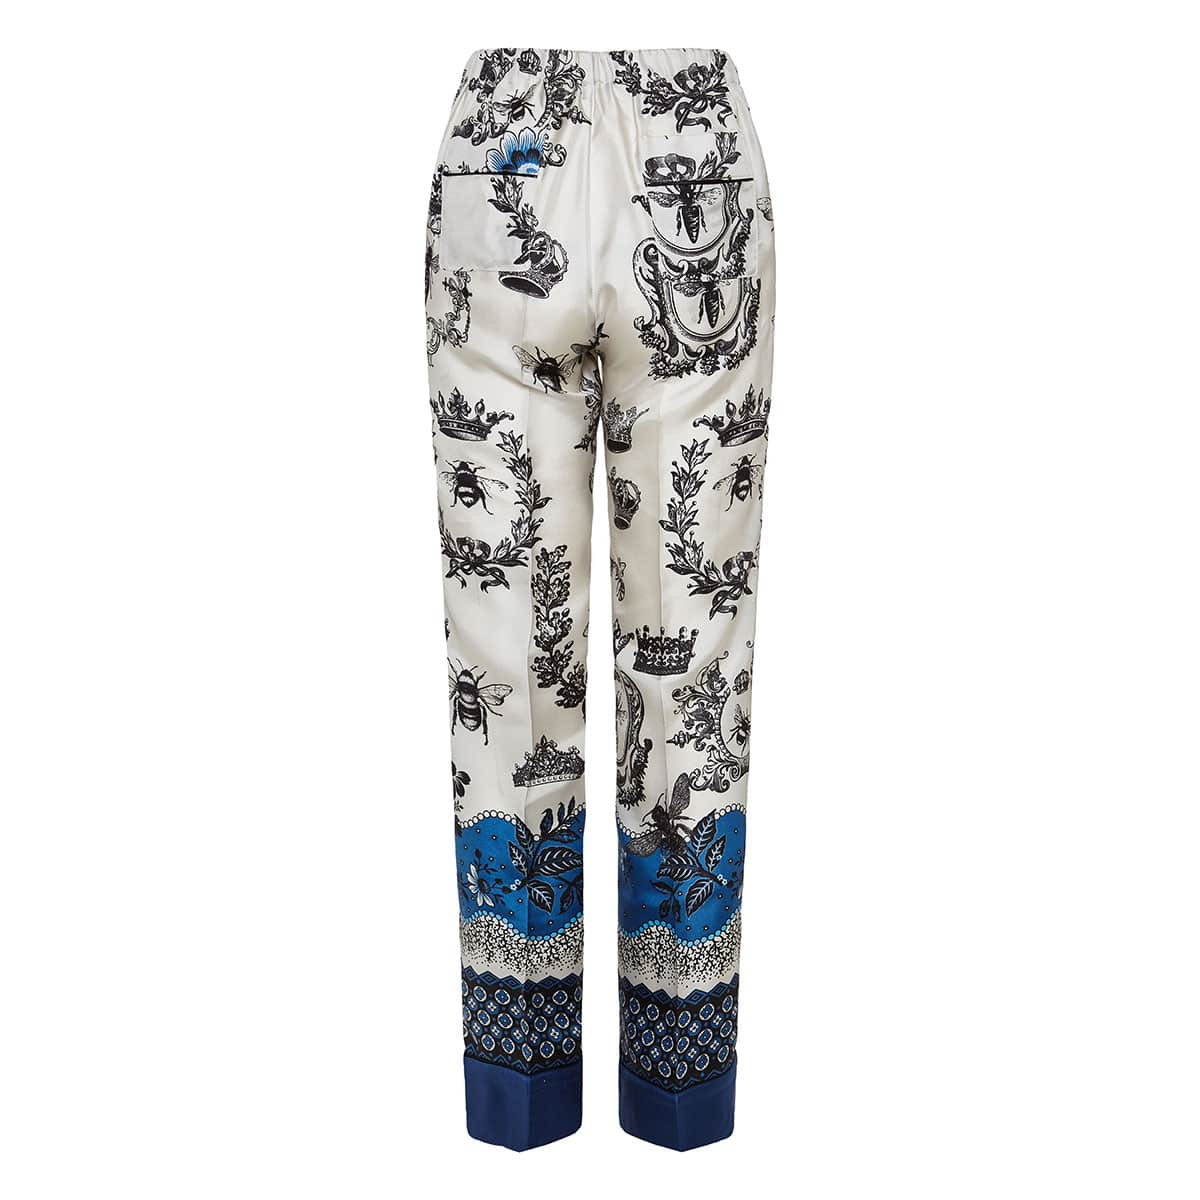 Printed silk pyjama trousers